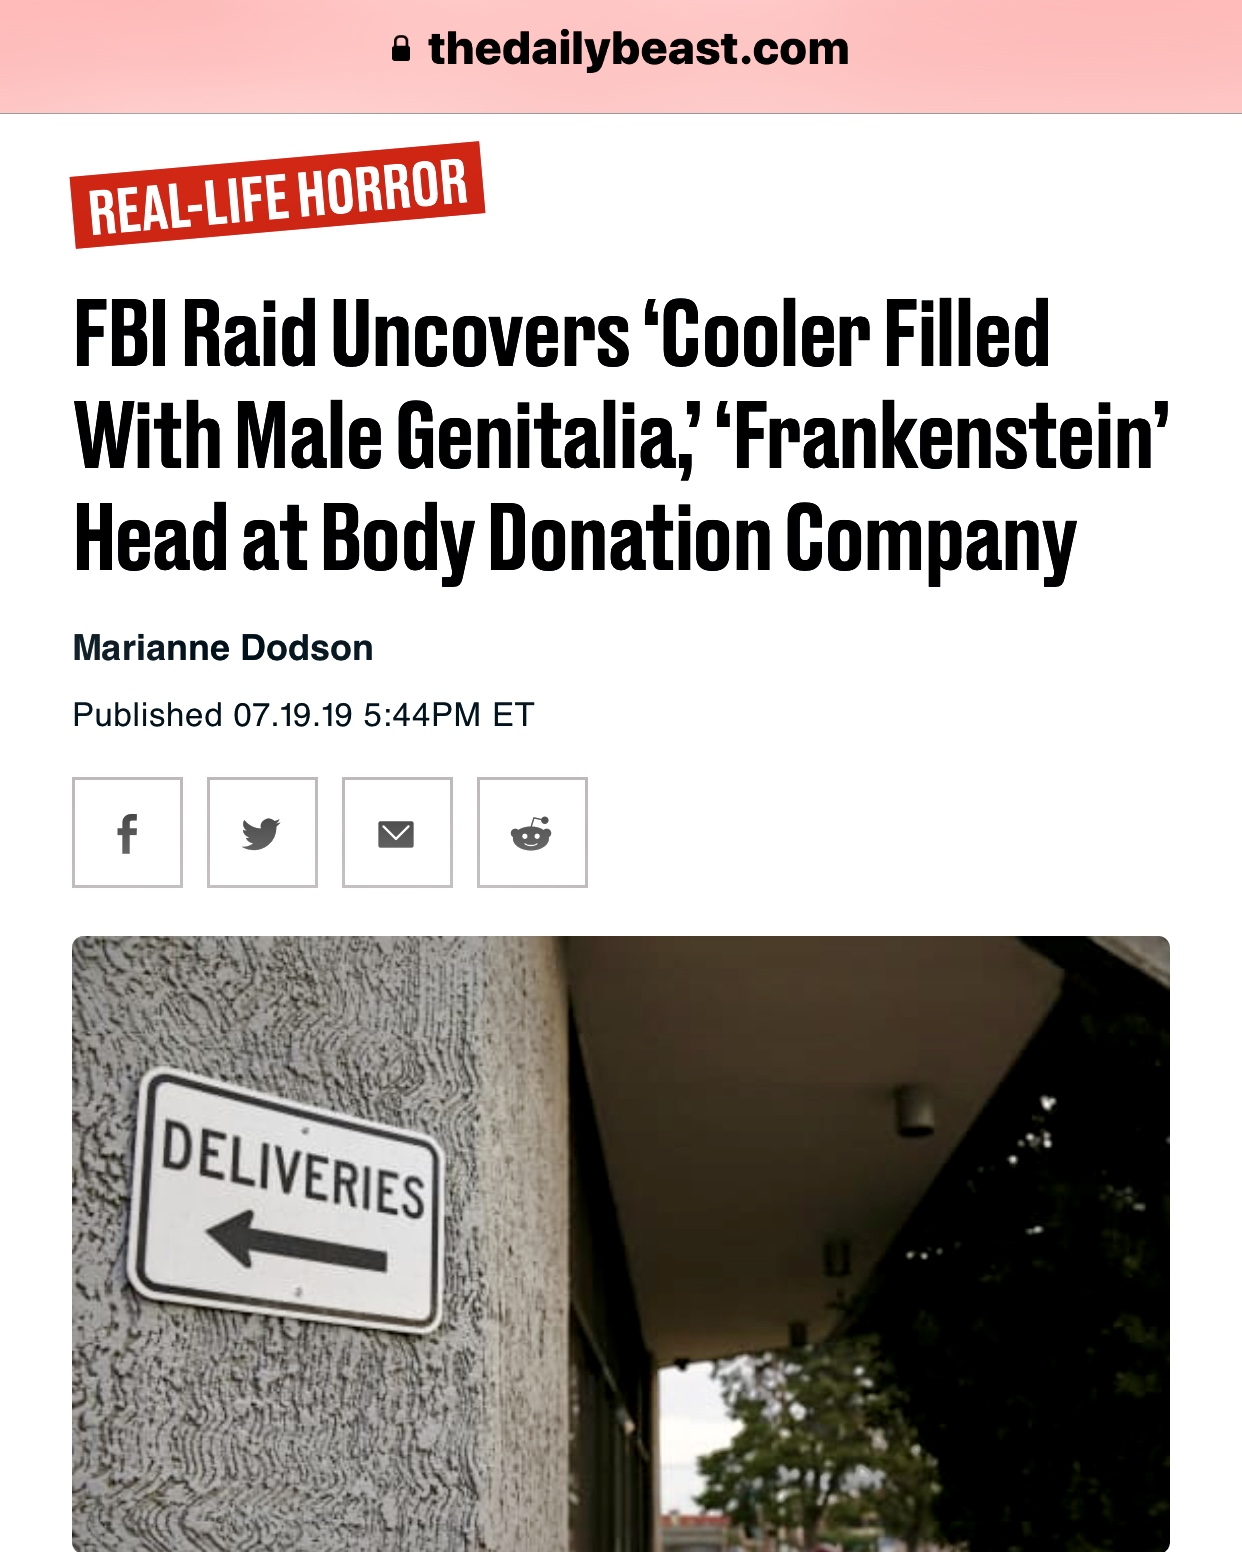 Horror of Horrors FBI Raid Uncovers ~ Cooler Filled With Male Genitalia